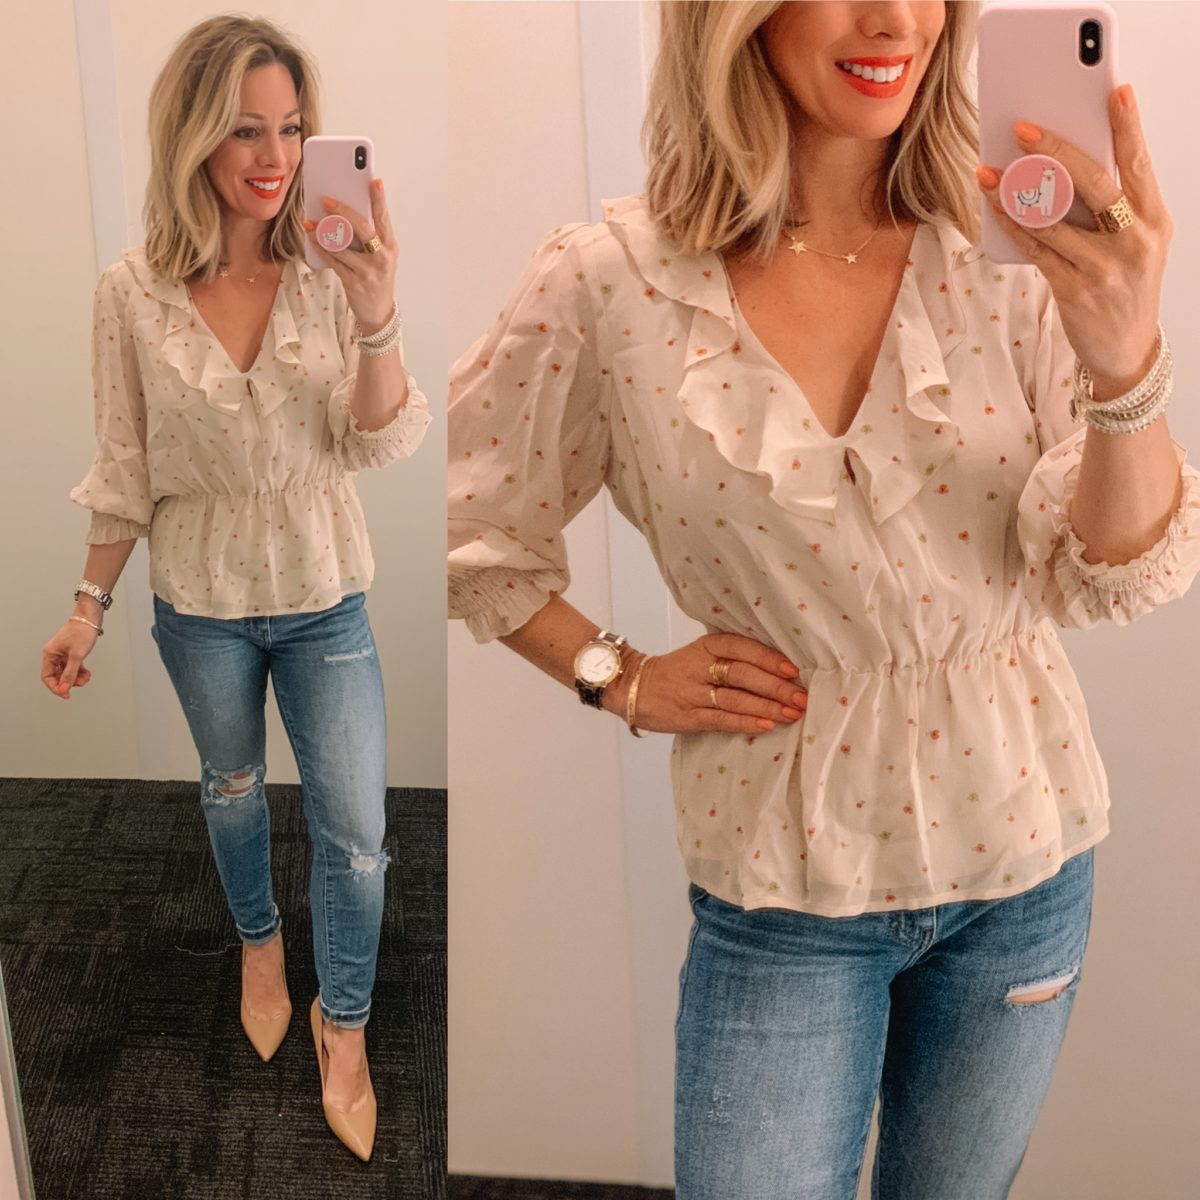 V-neck Ruffle Peplum top, Distressed Jeans, Nude Heels